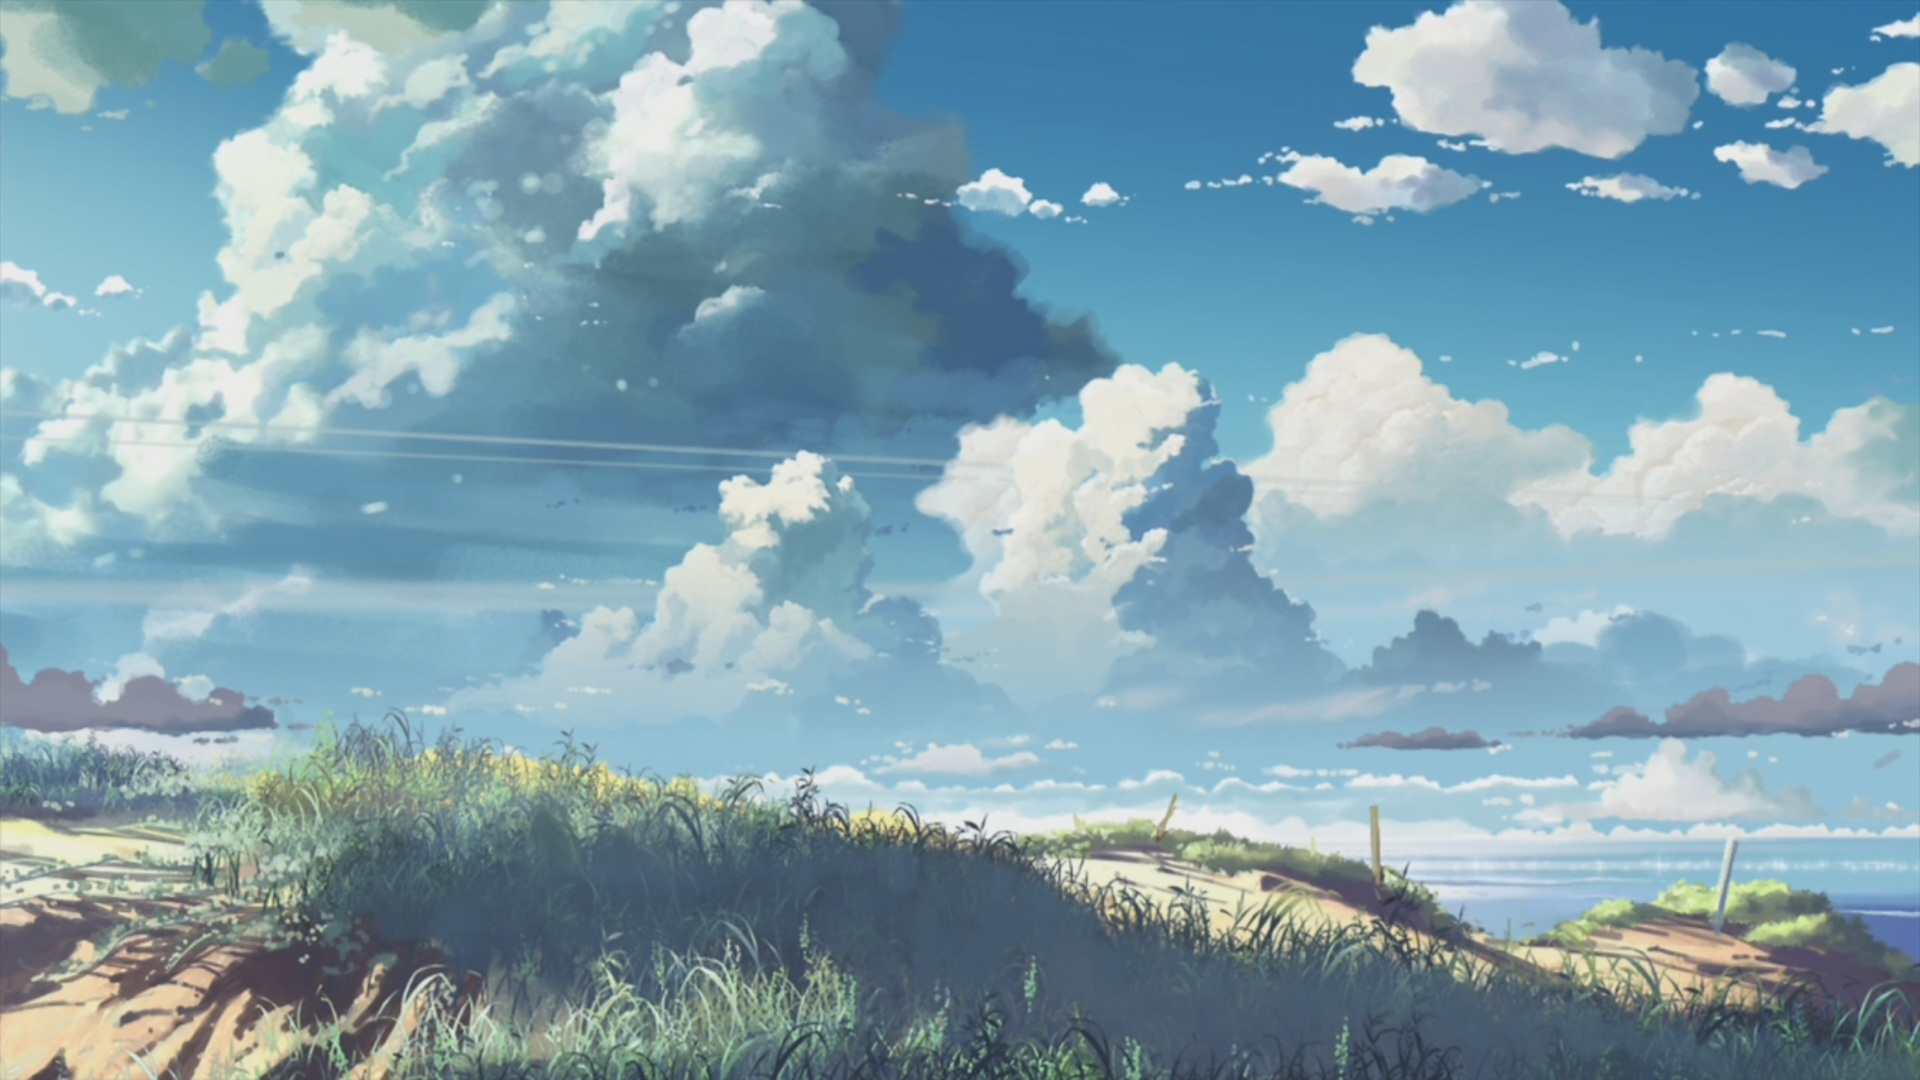 Pretty Anime Scenery Wallpaper